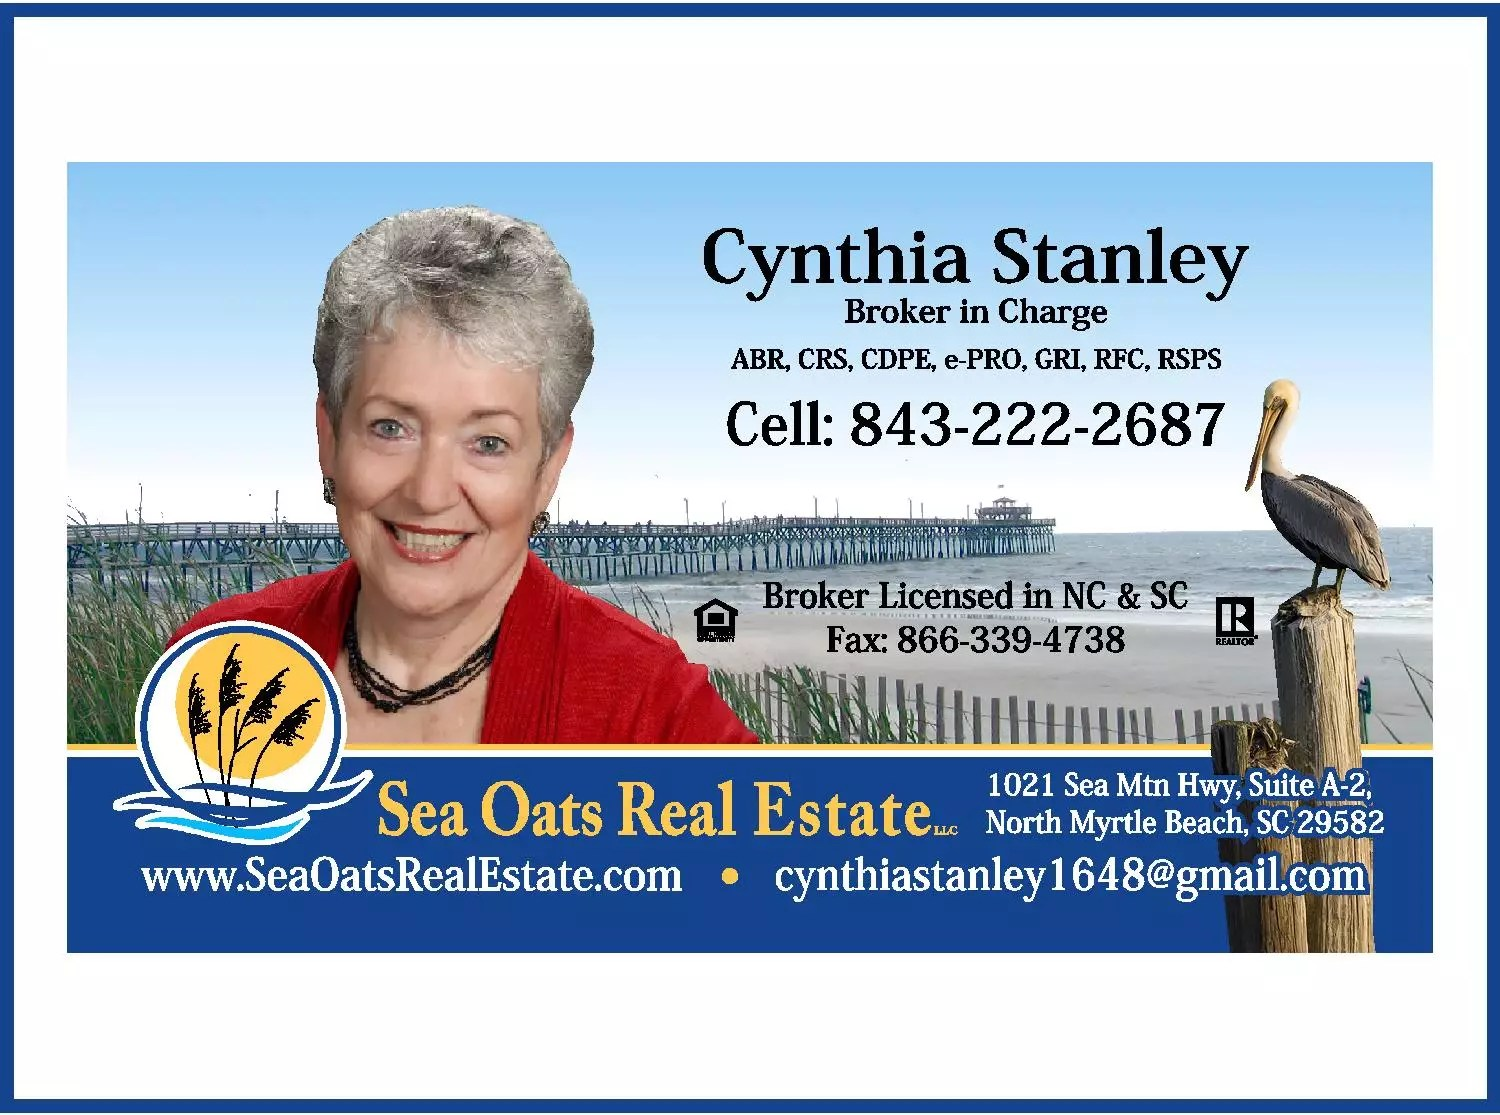 Sea Oats Real Estate